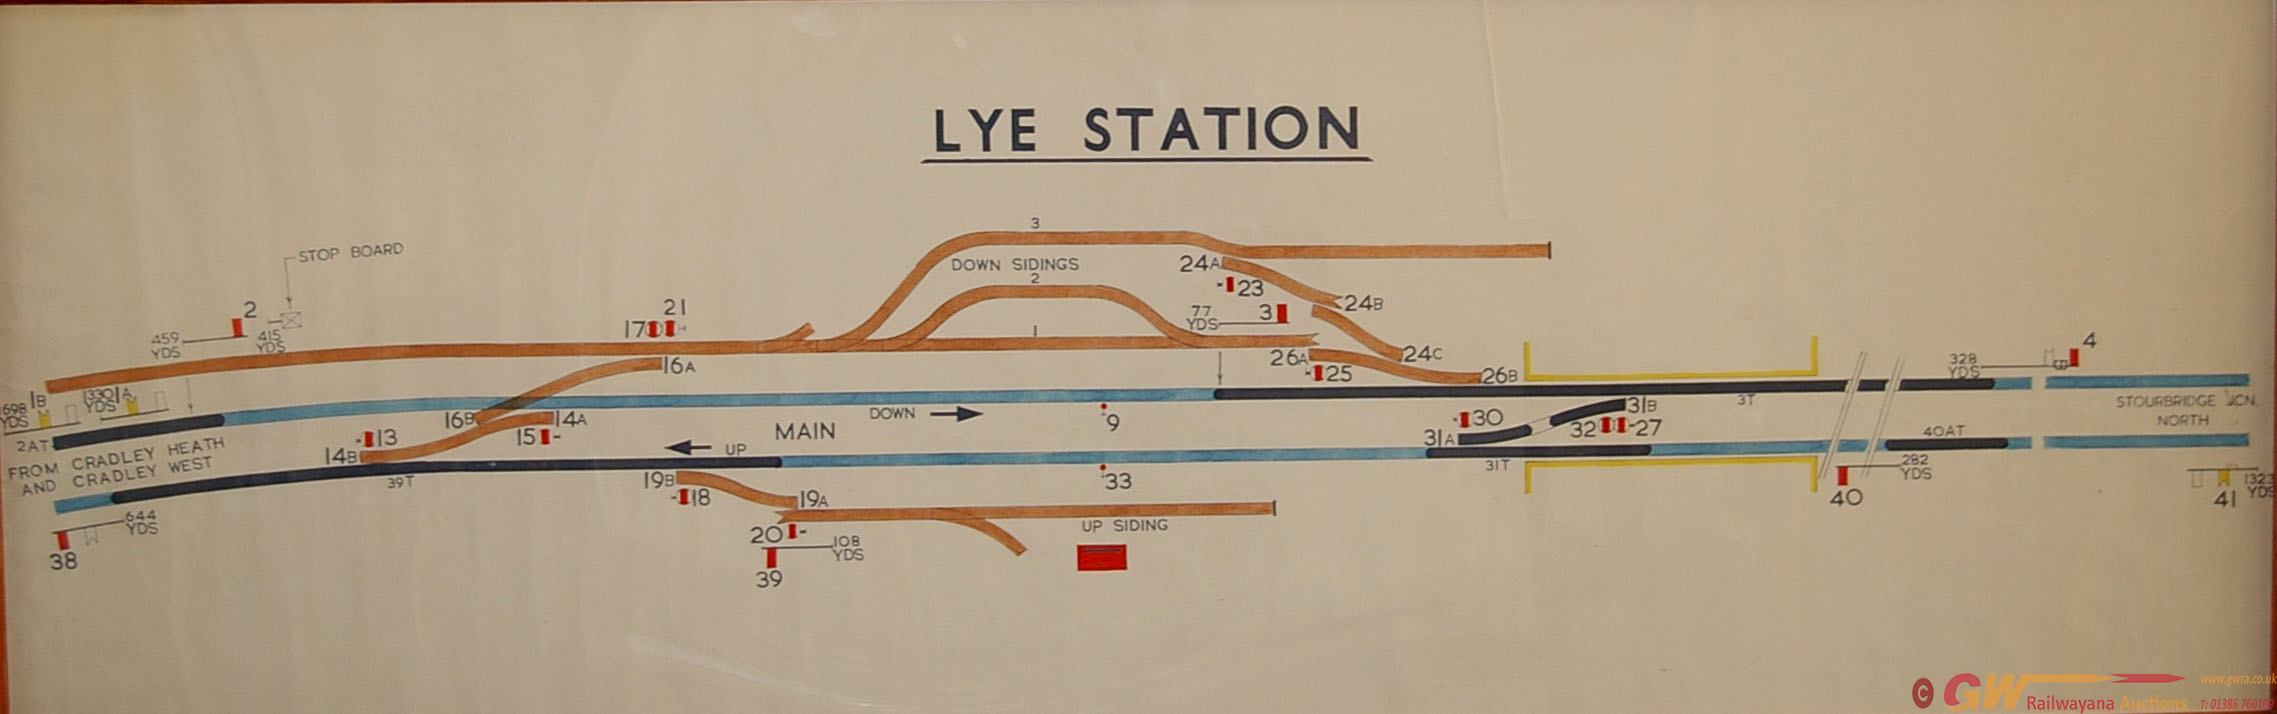 Signal Box Diagram LYE STATION. Situated Between